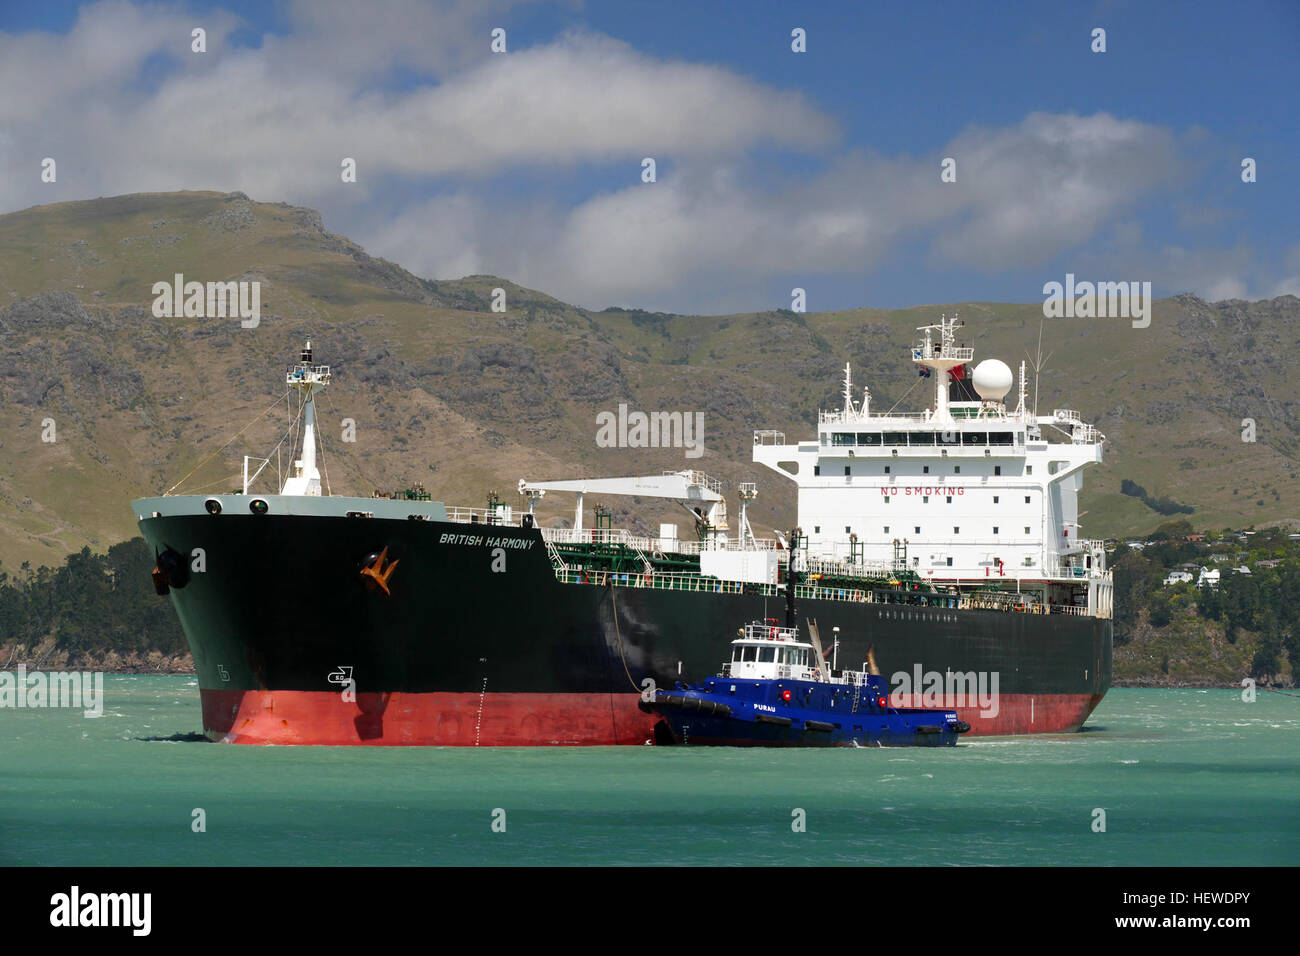 IMO: 9288813 MMSI: 232445000 Call Sign: MHMZ8 Flag: United Kingdom [GB] AIS Vessel Type: Tanker Gross Tonnage: 29335 - Stock Image